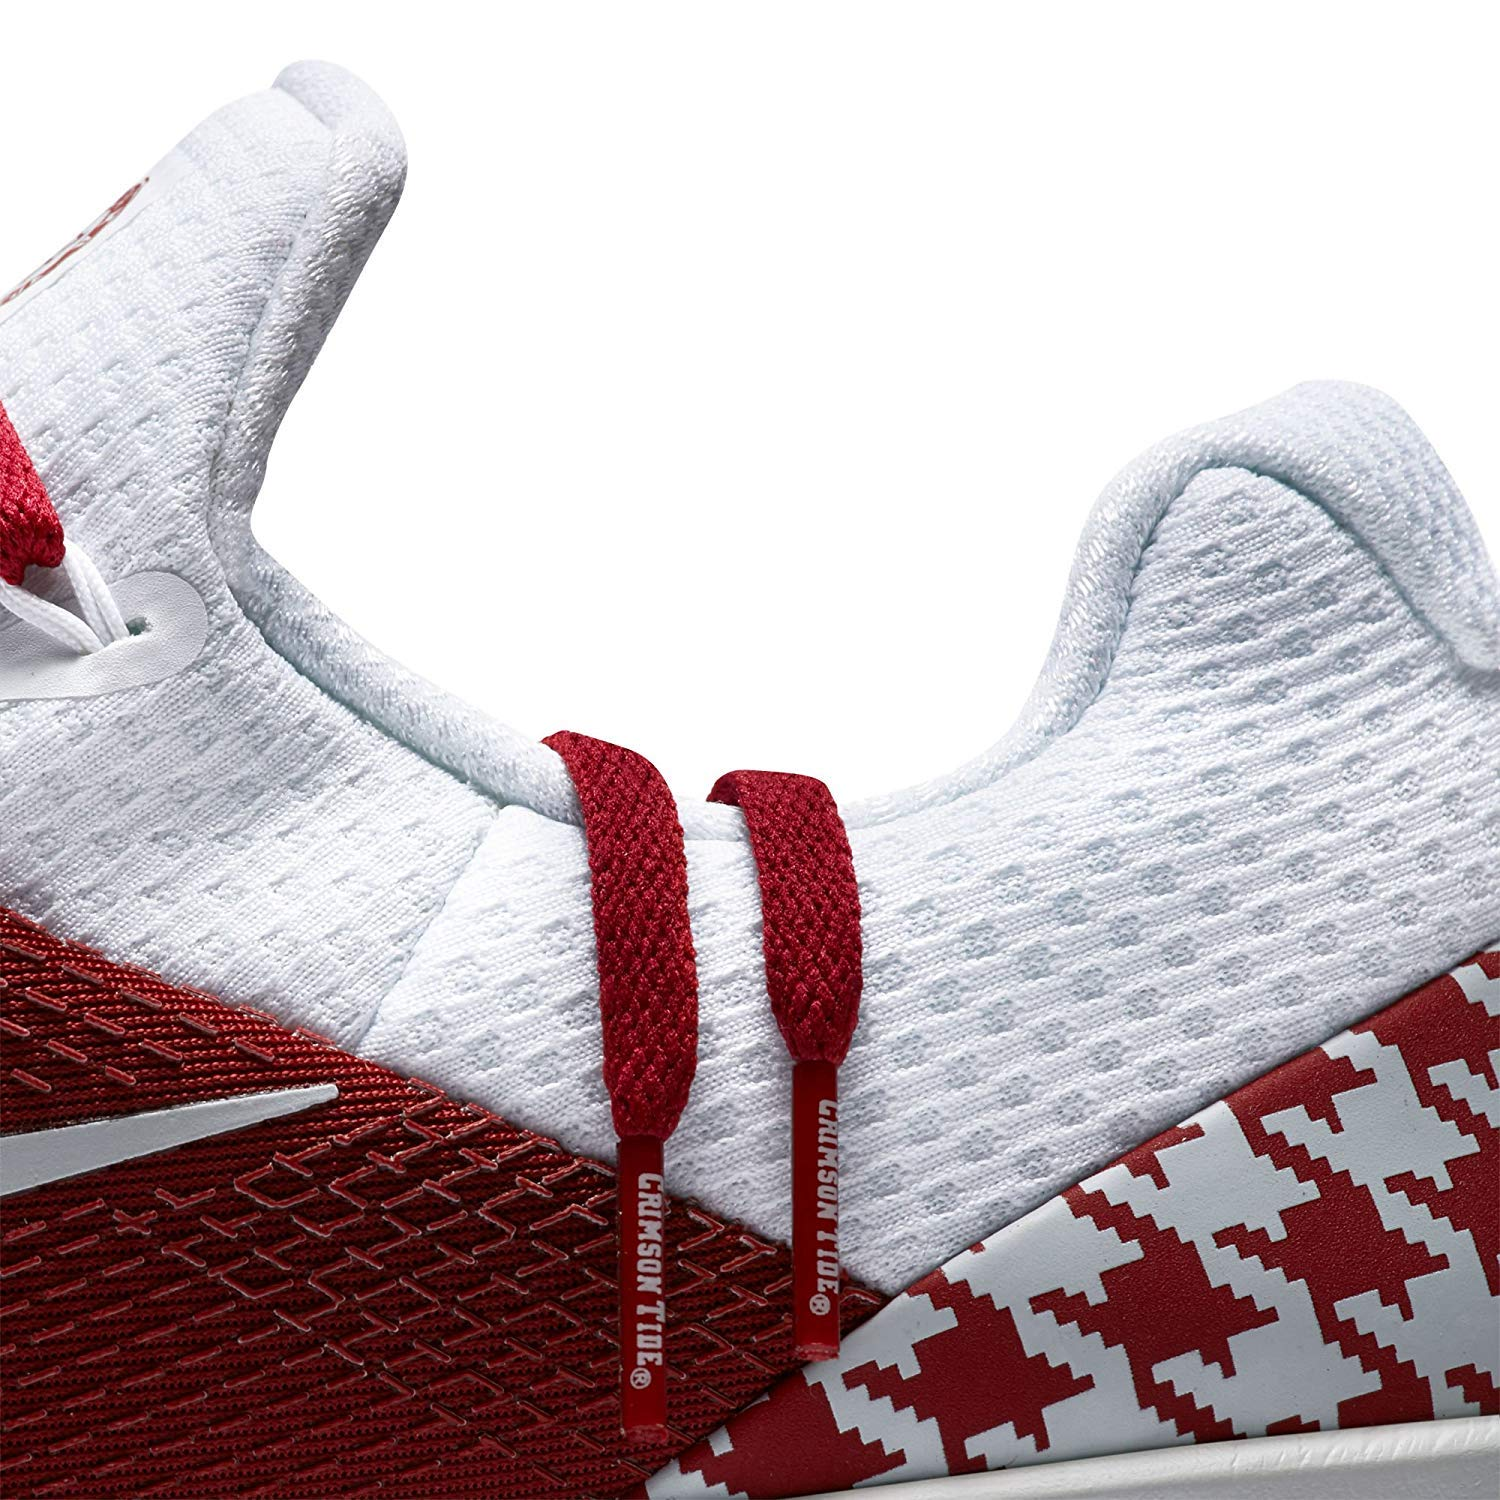 Alabama Crimson Tide: Once again makes it to Nike's special edition sale